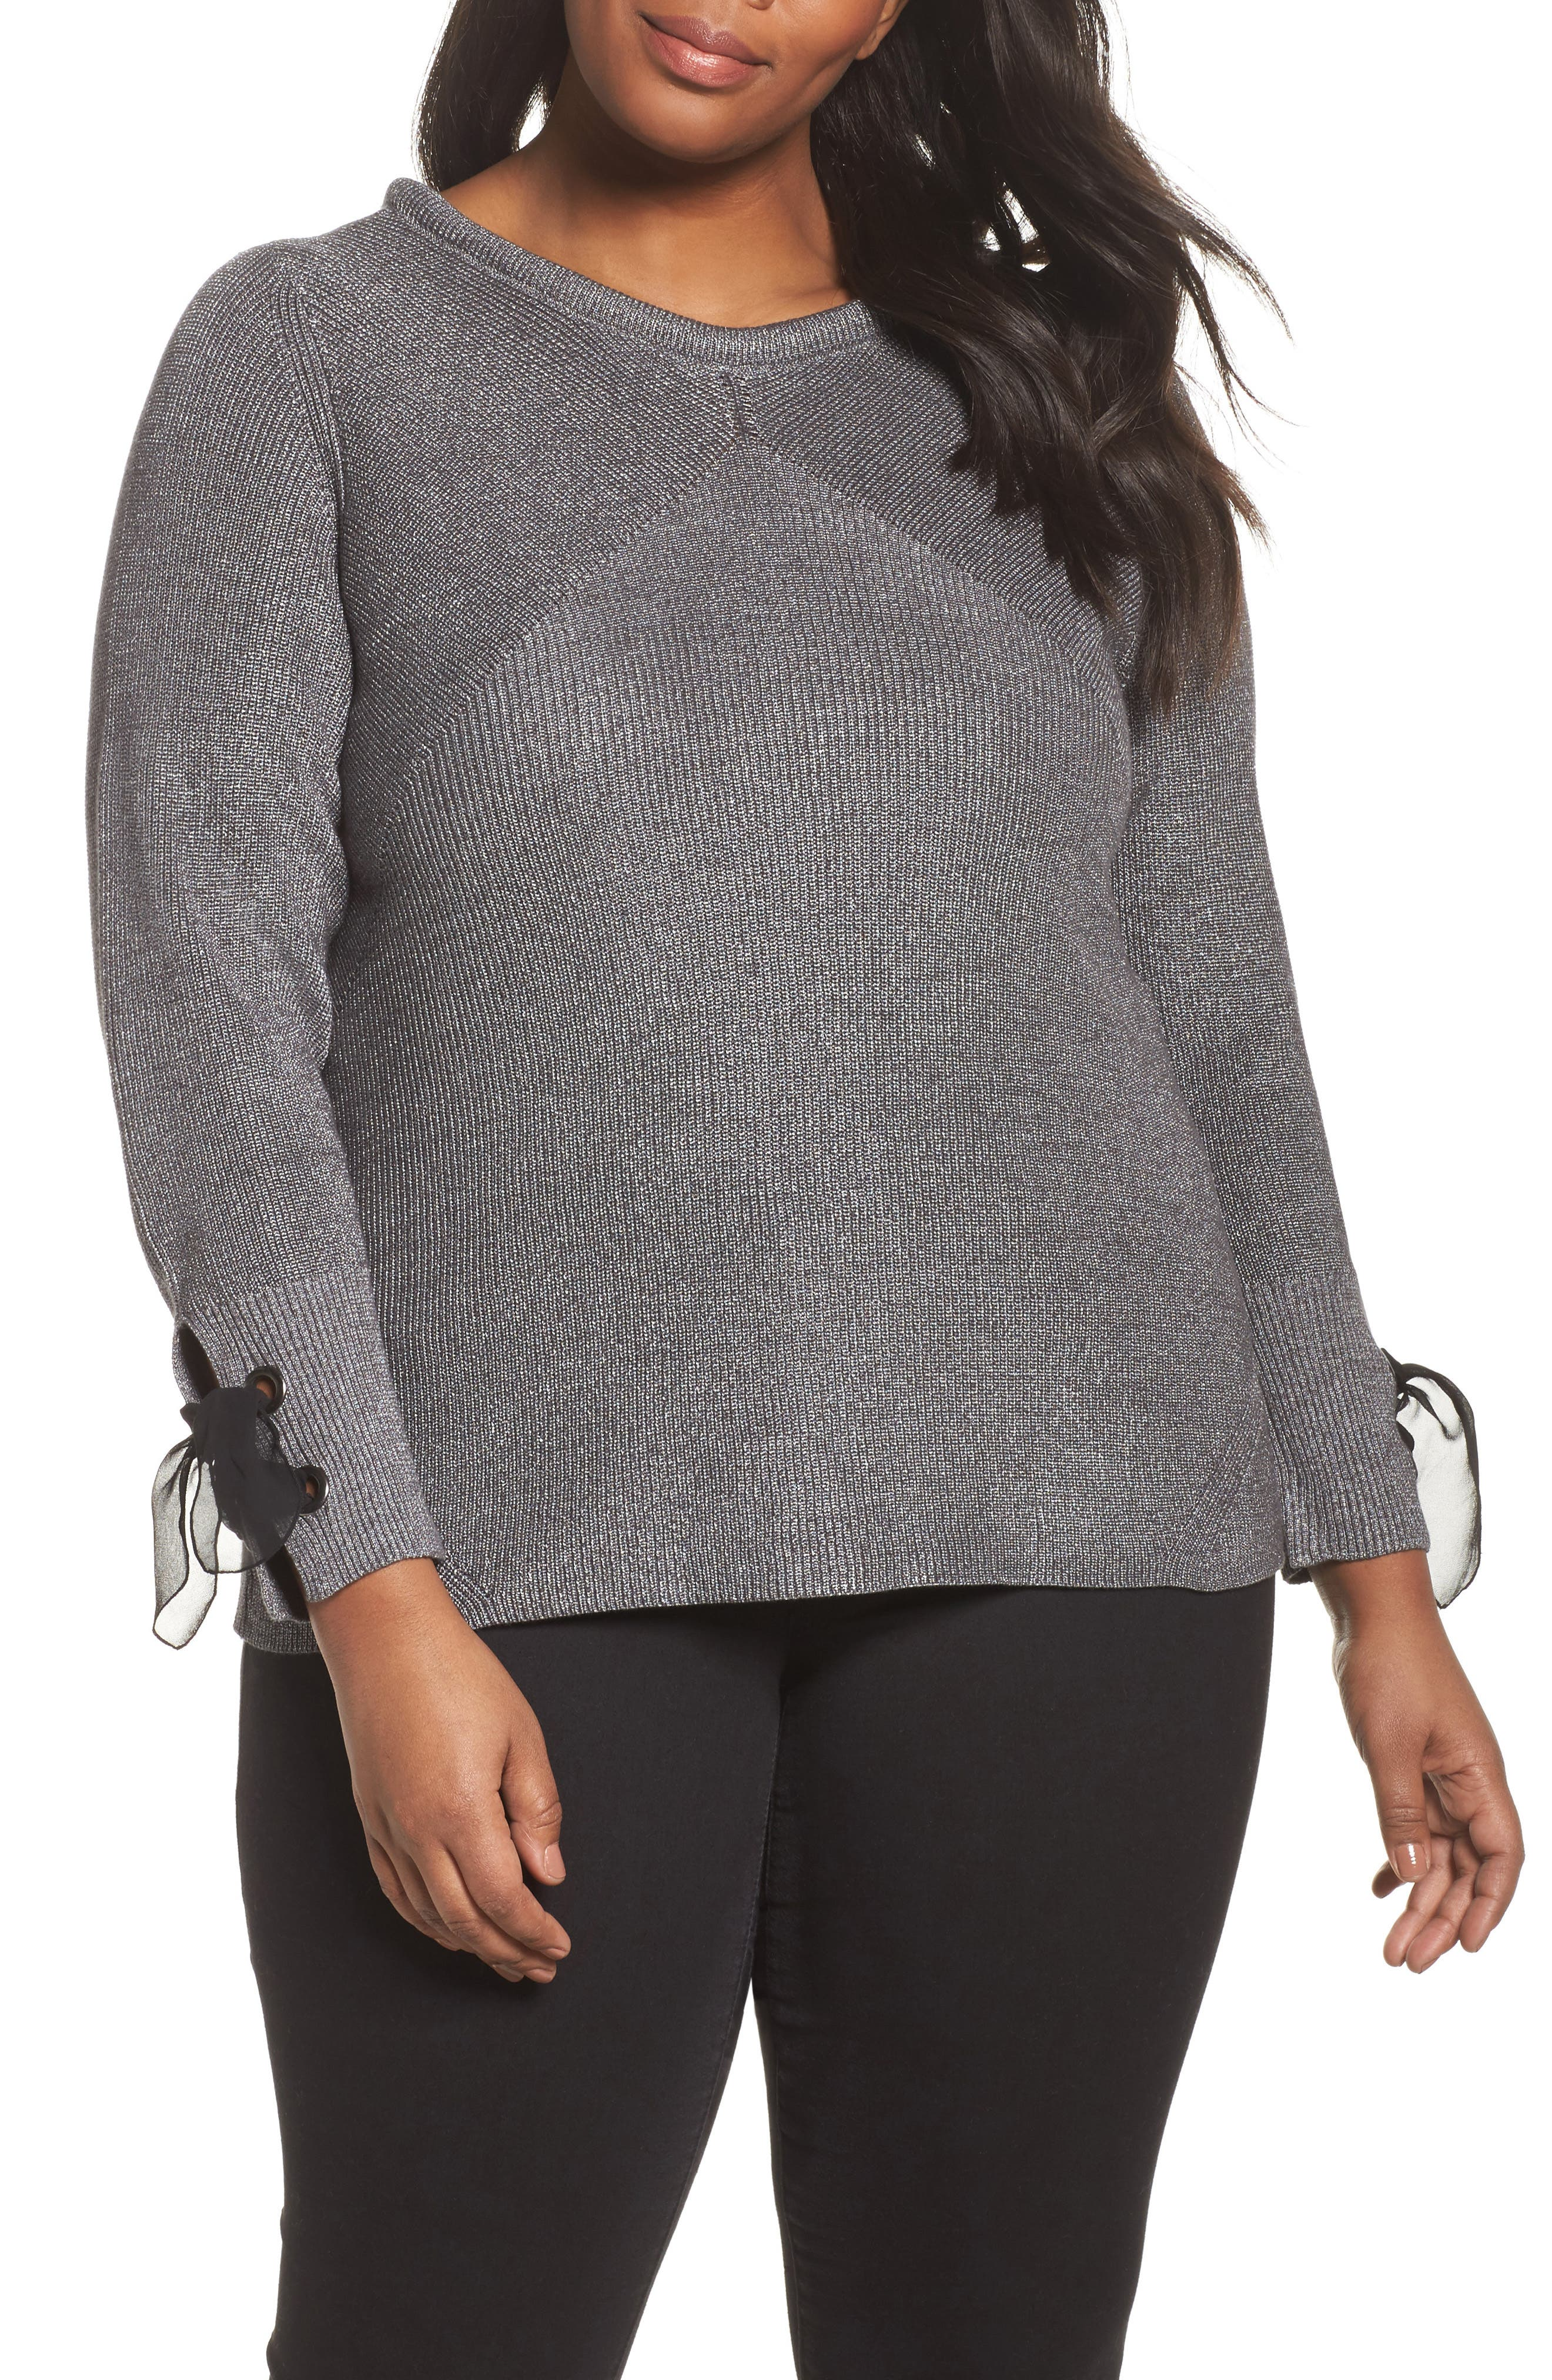 Alternate Image 1 Selected - NIC+ZOE Metallic Muse Top (Plus Size)